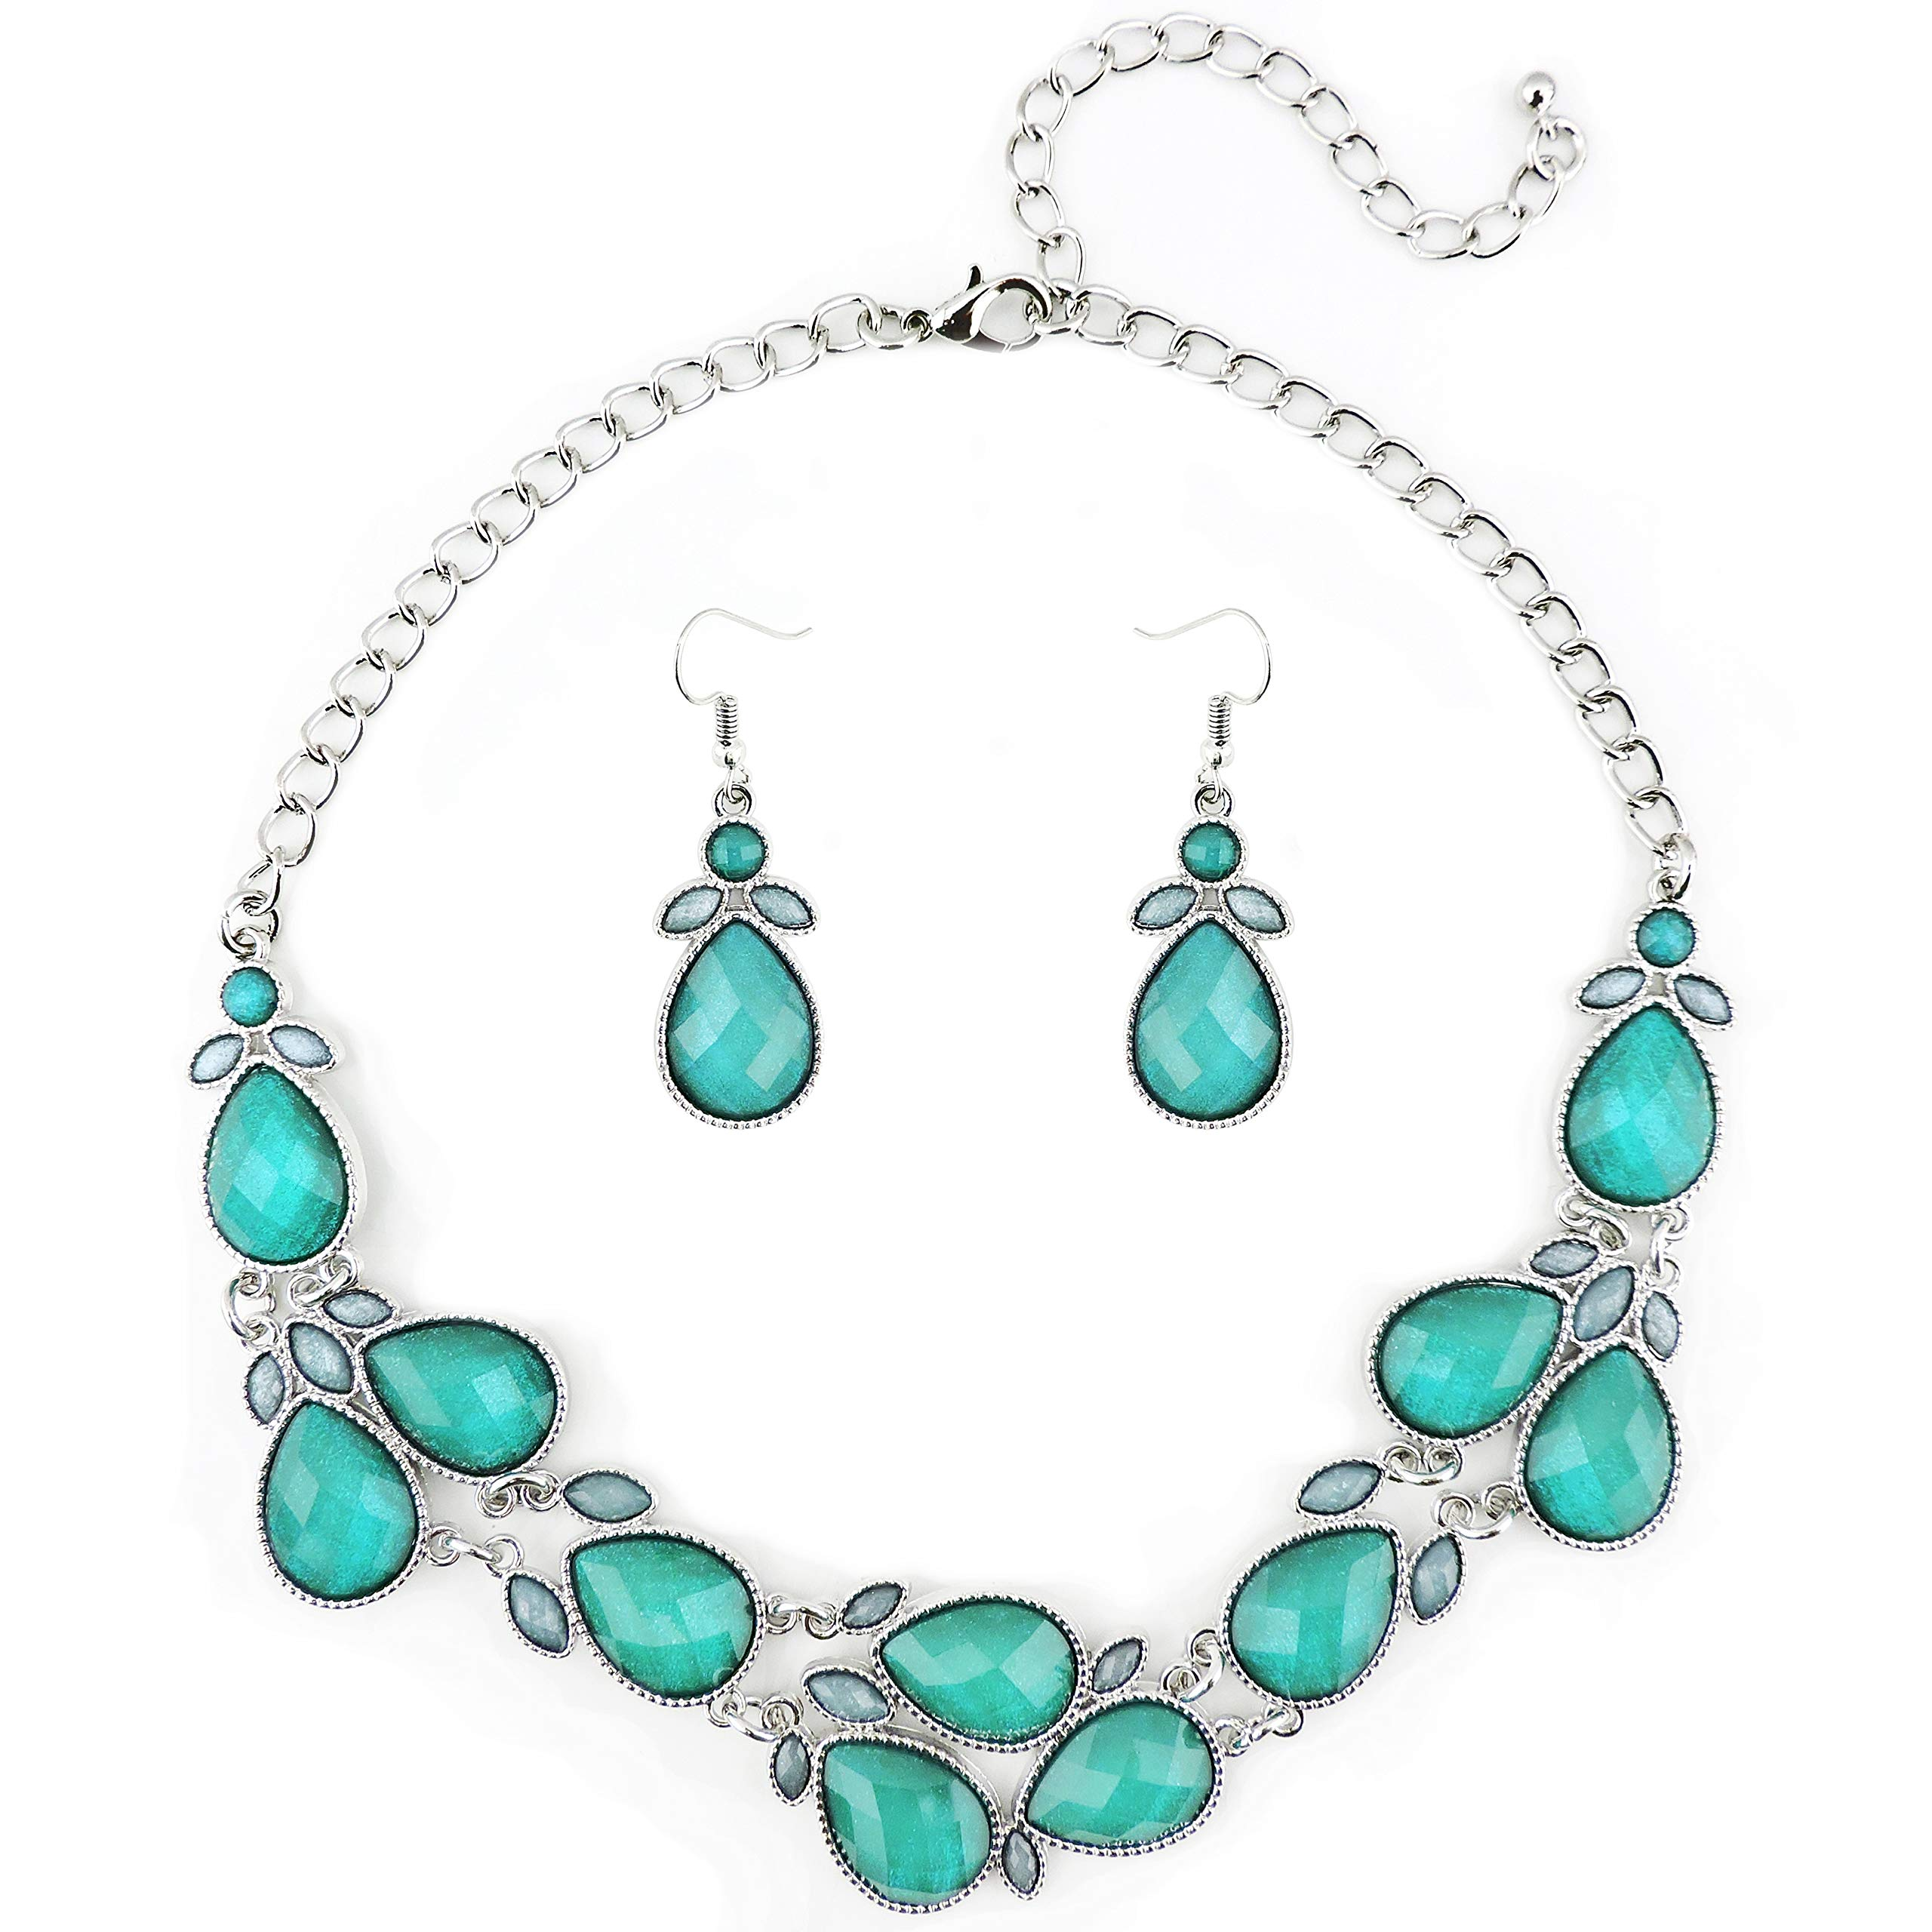 Firstmeet Shiny Resin Drill Collar Necklace with Earrings (Teal-bk)